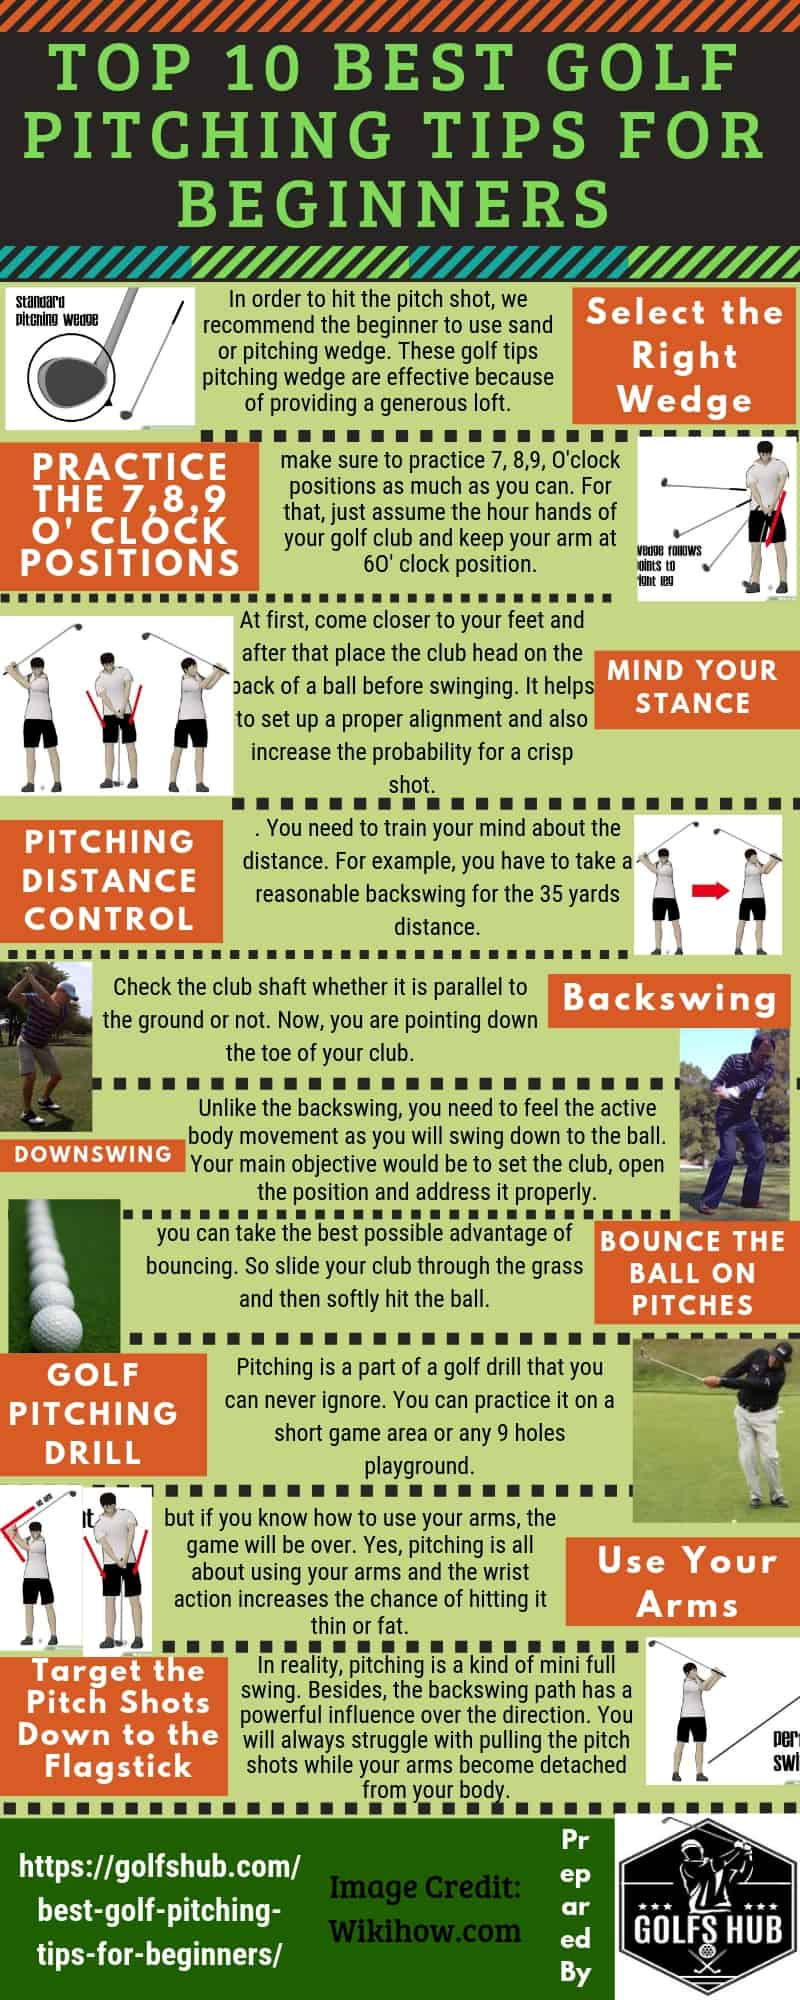 Top 10 Best Golf Pitching Tips for Beginners